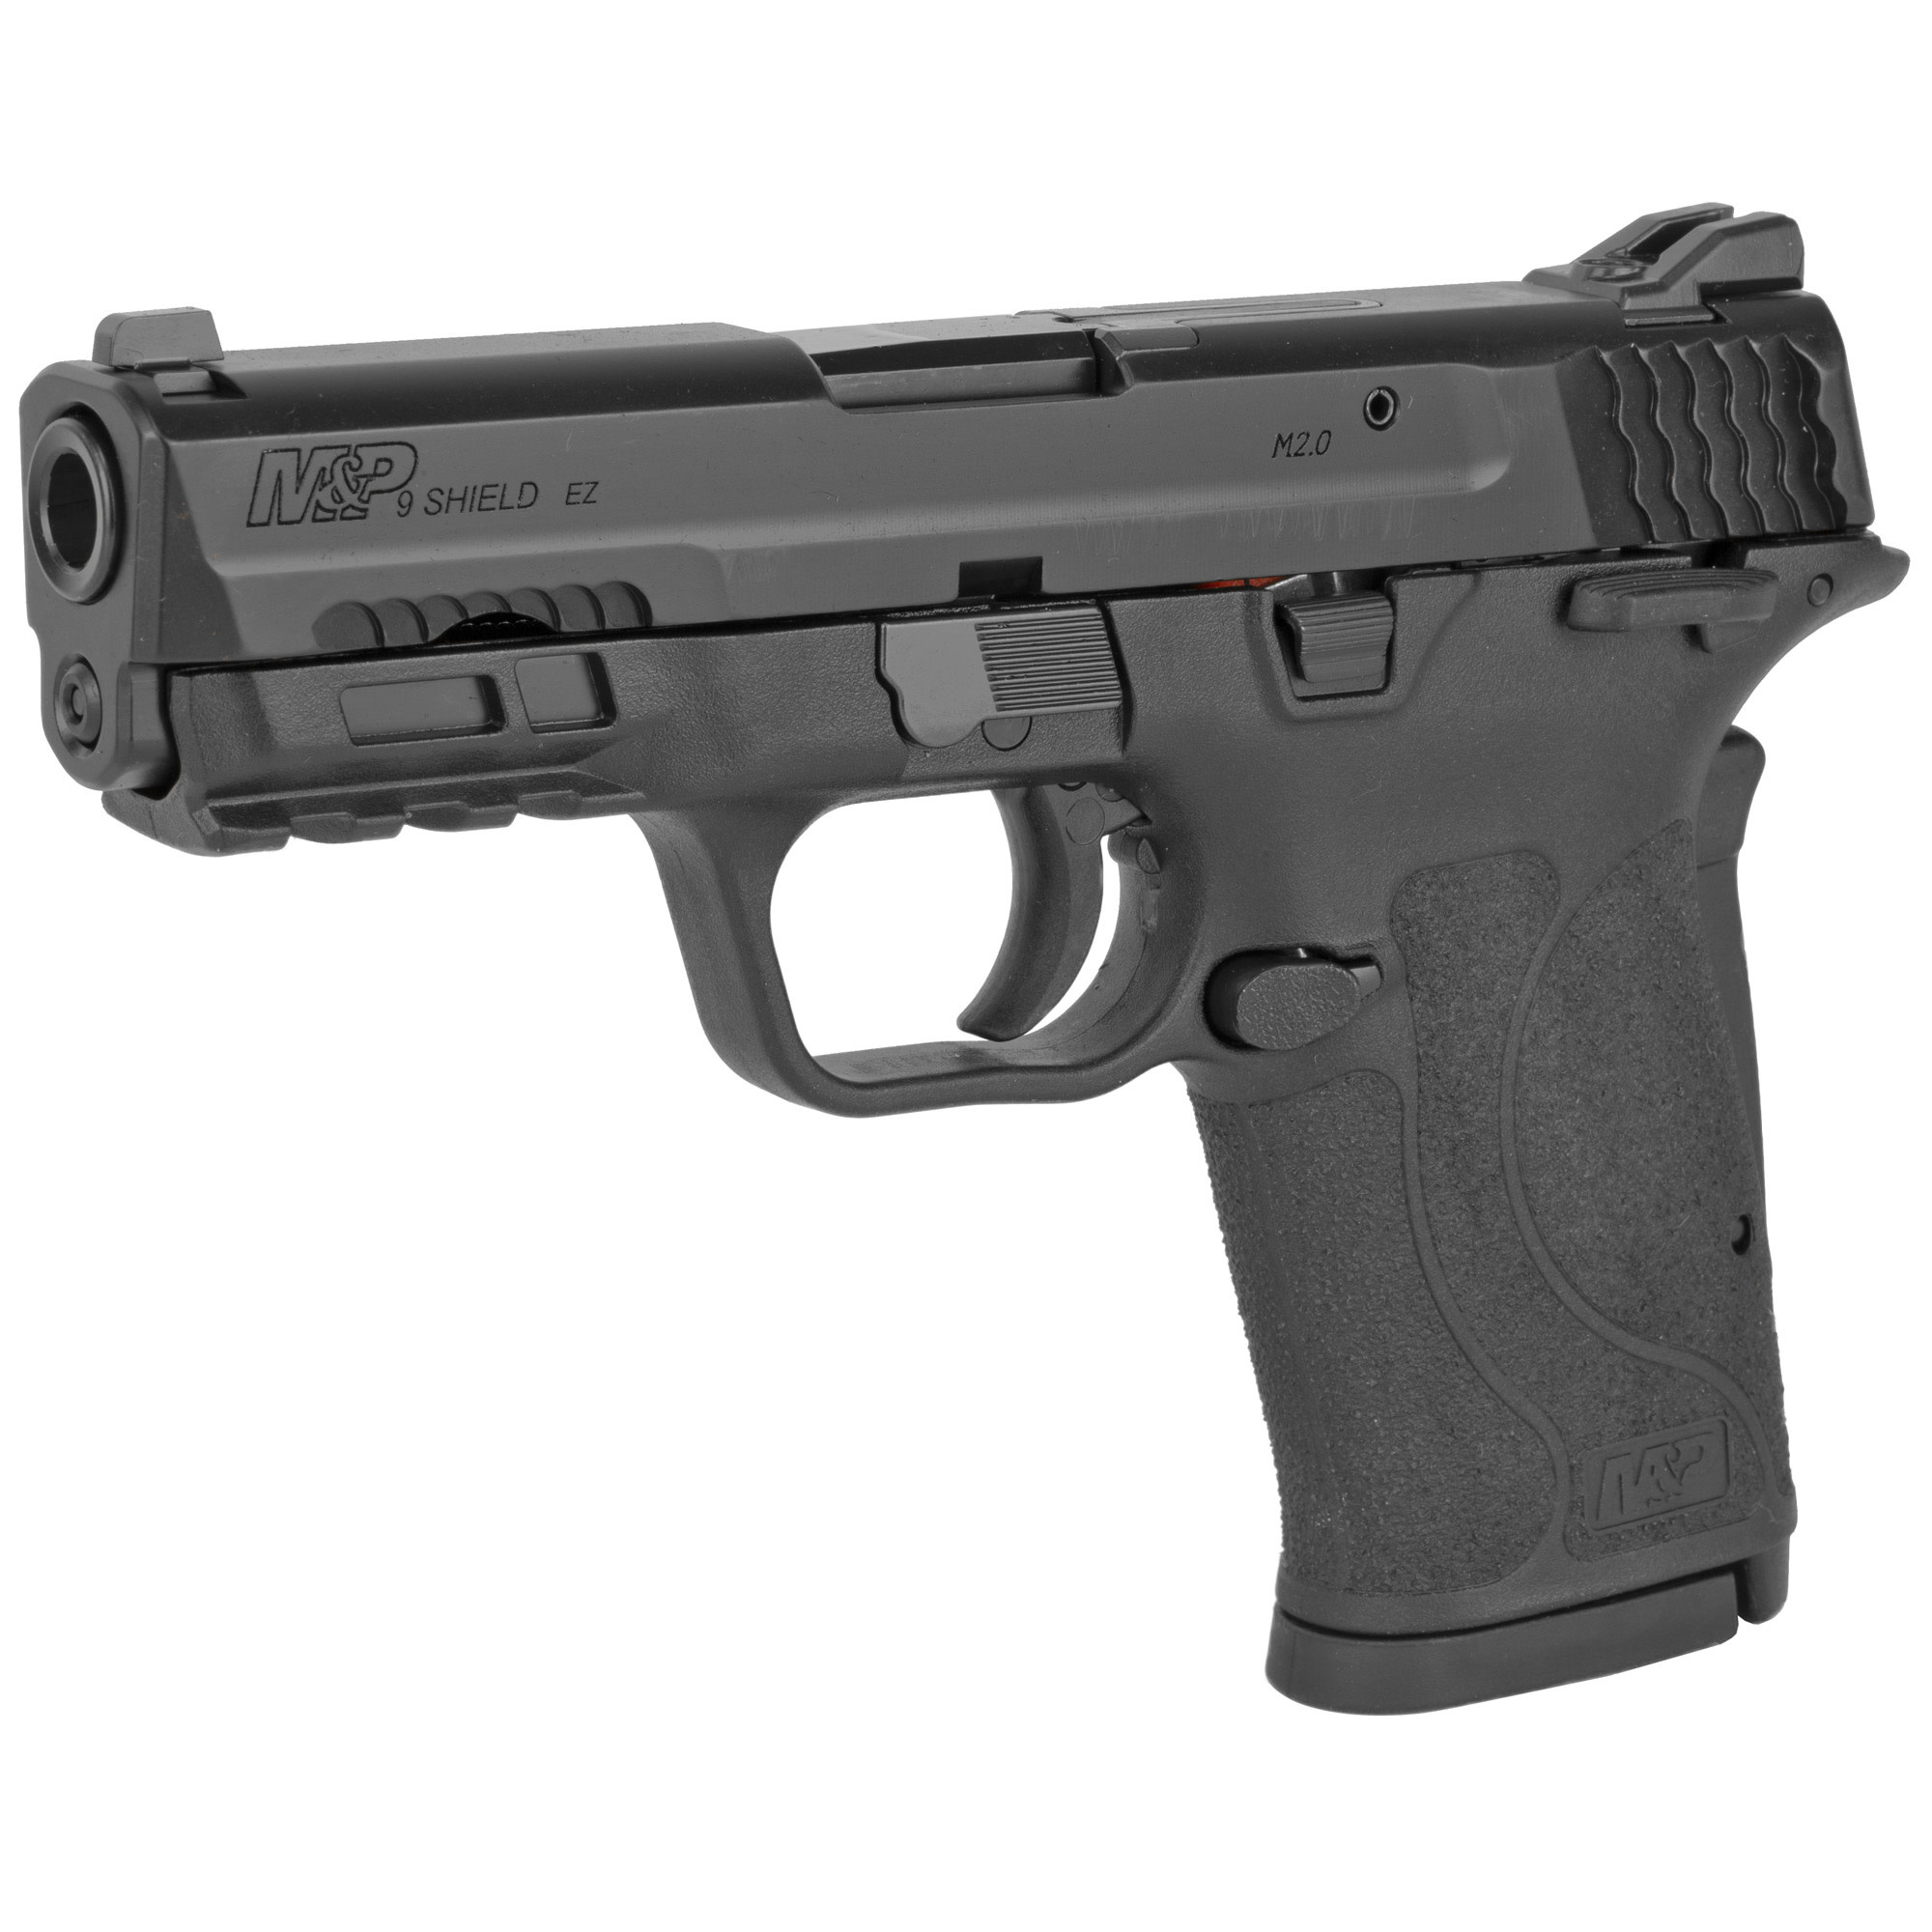 Smith & Wesson M&P 9 EZ Shield with Thumb Safety, 9mm